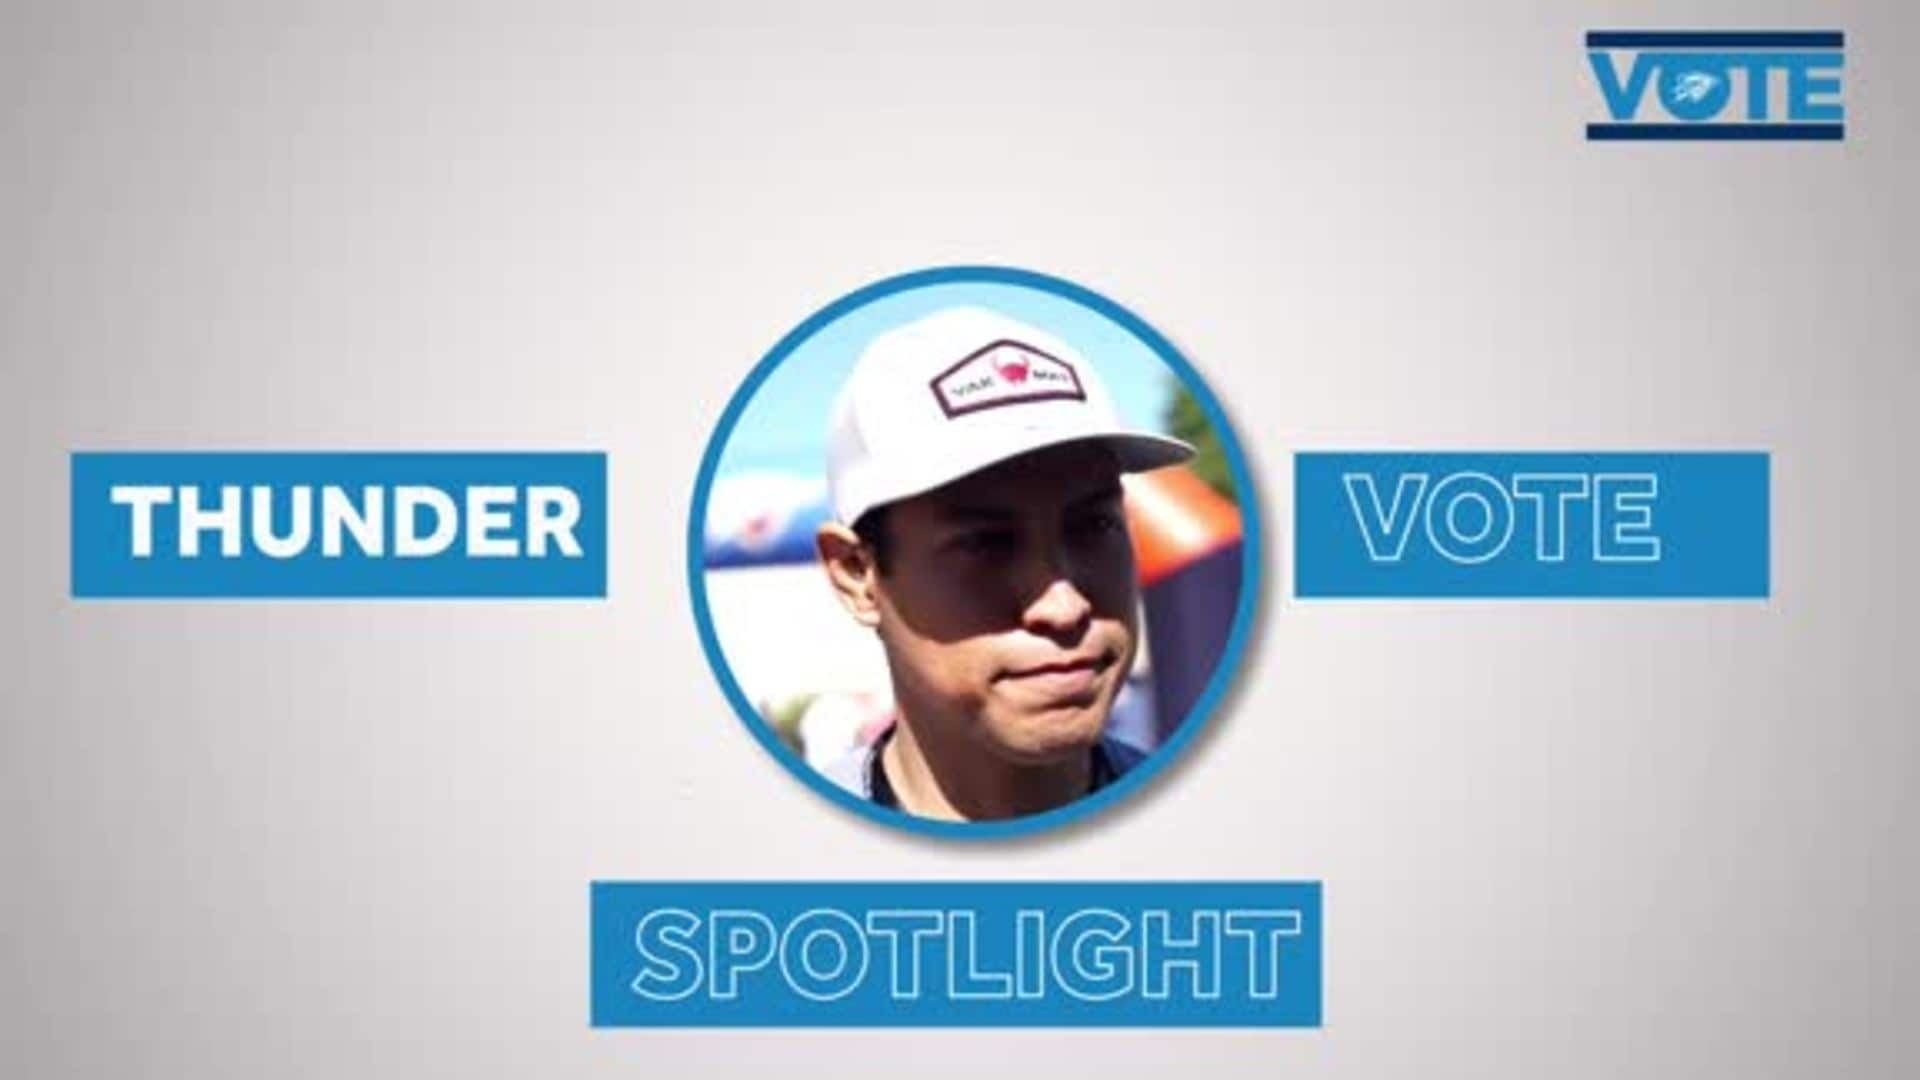 Thunder VOTE Spotlight: 'It's My Duty'